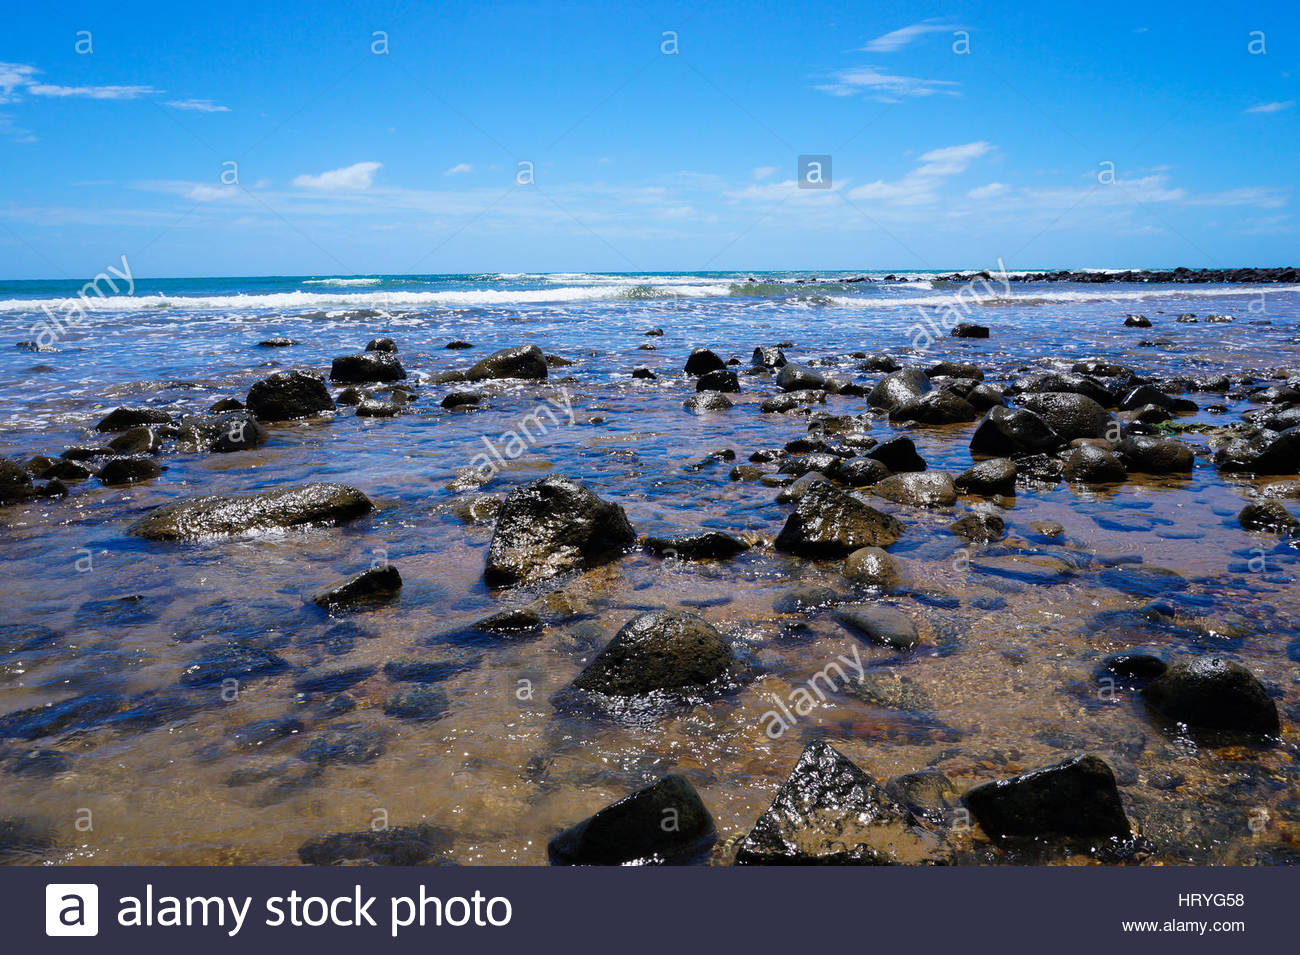 Mon Repos Beach Queensland Australia - Stock Image